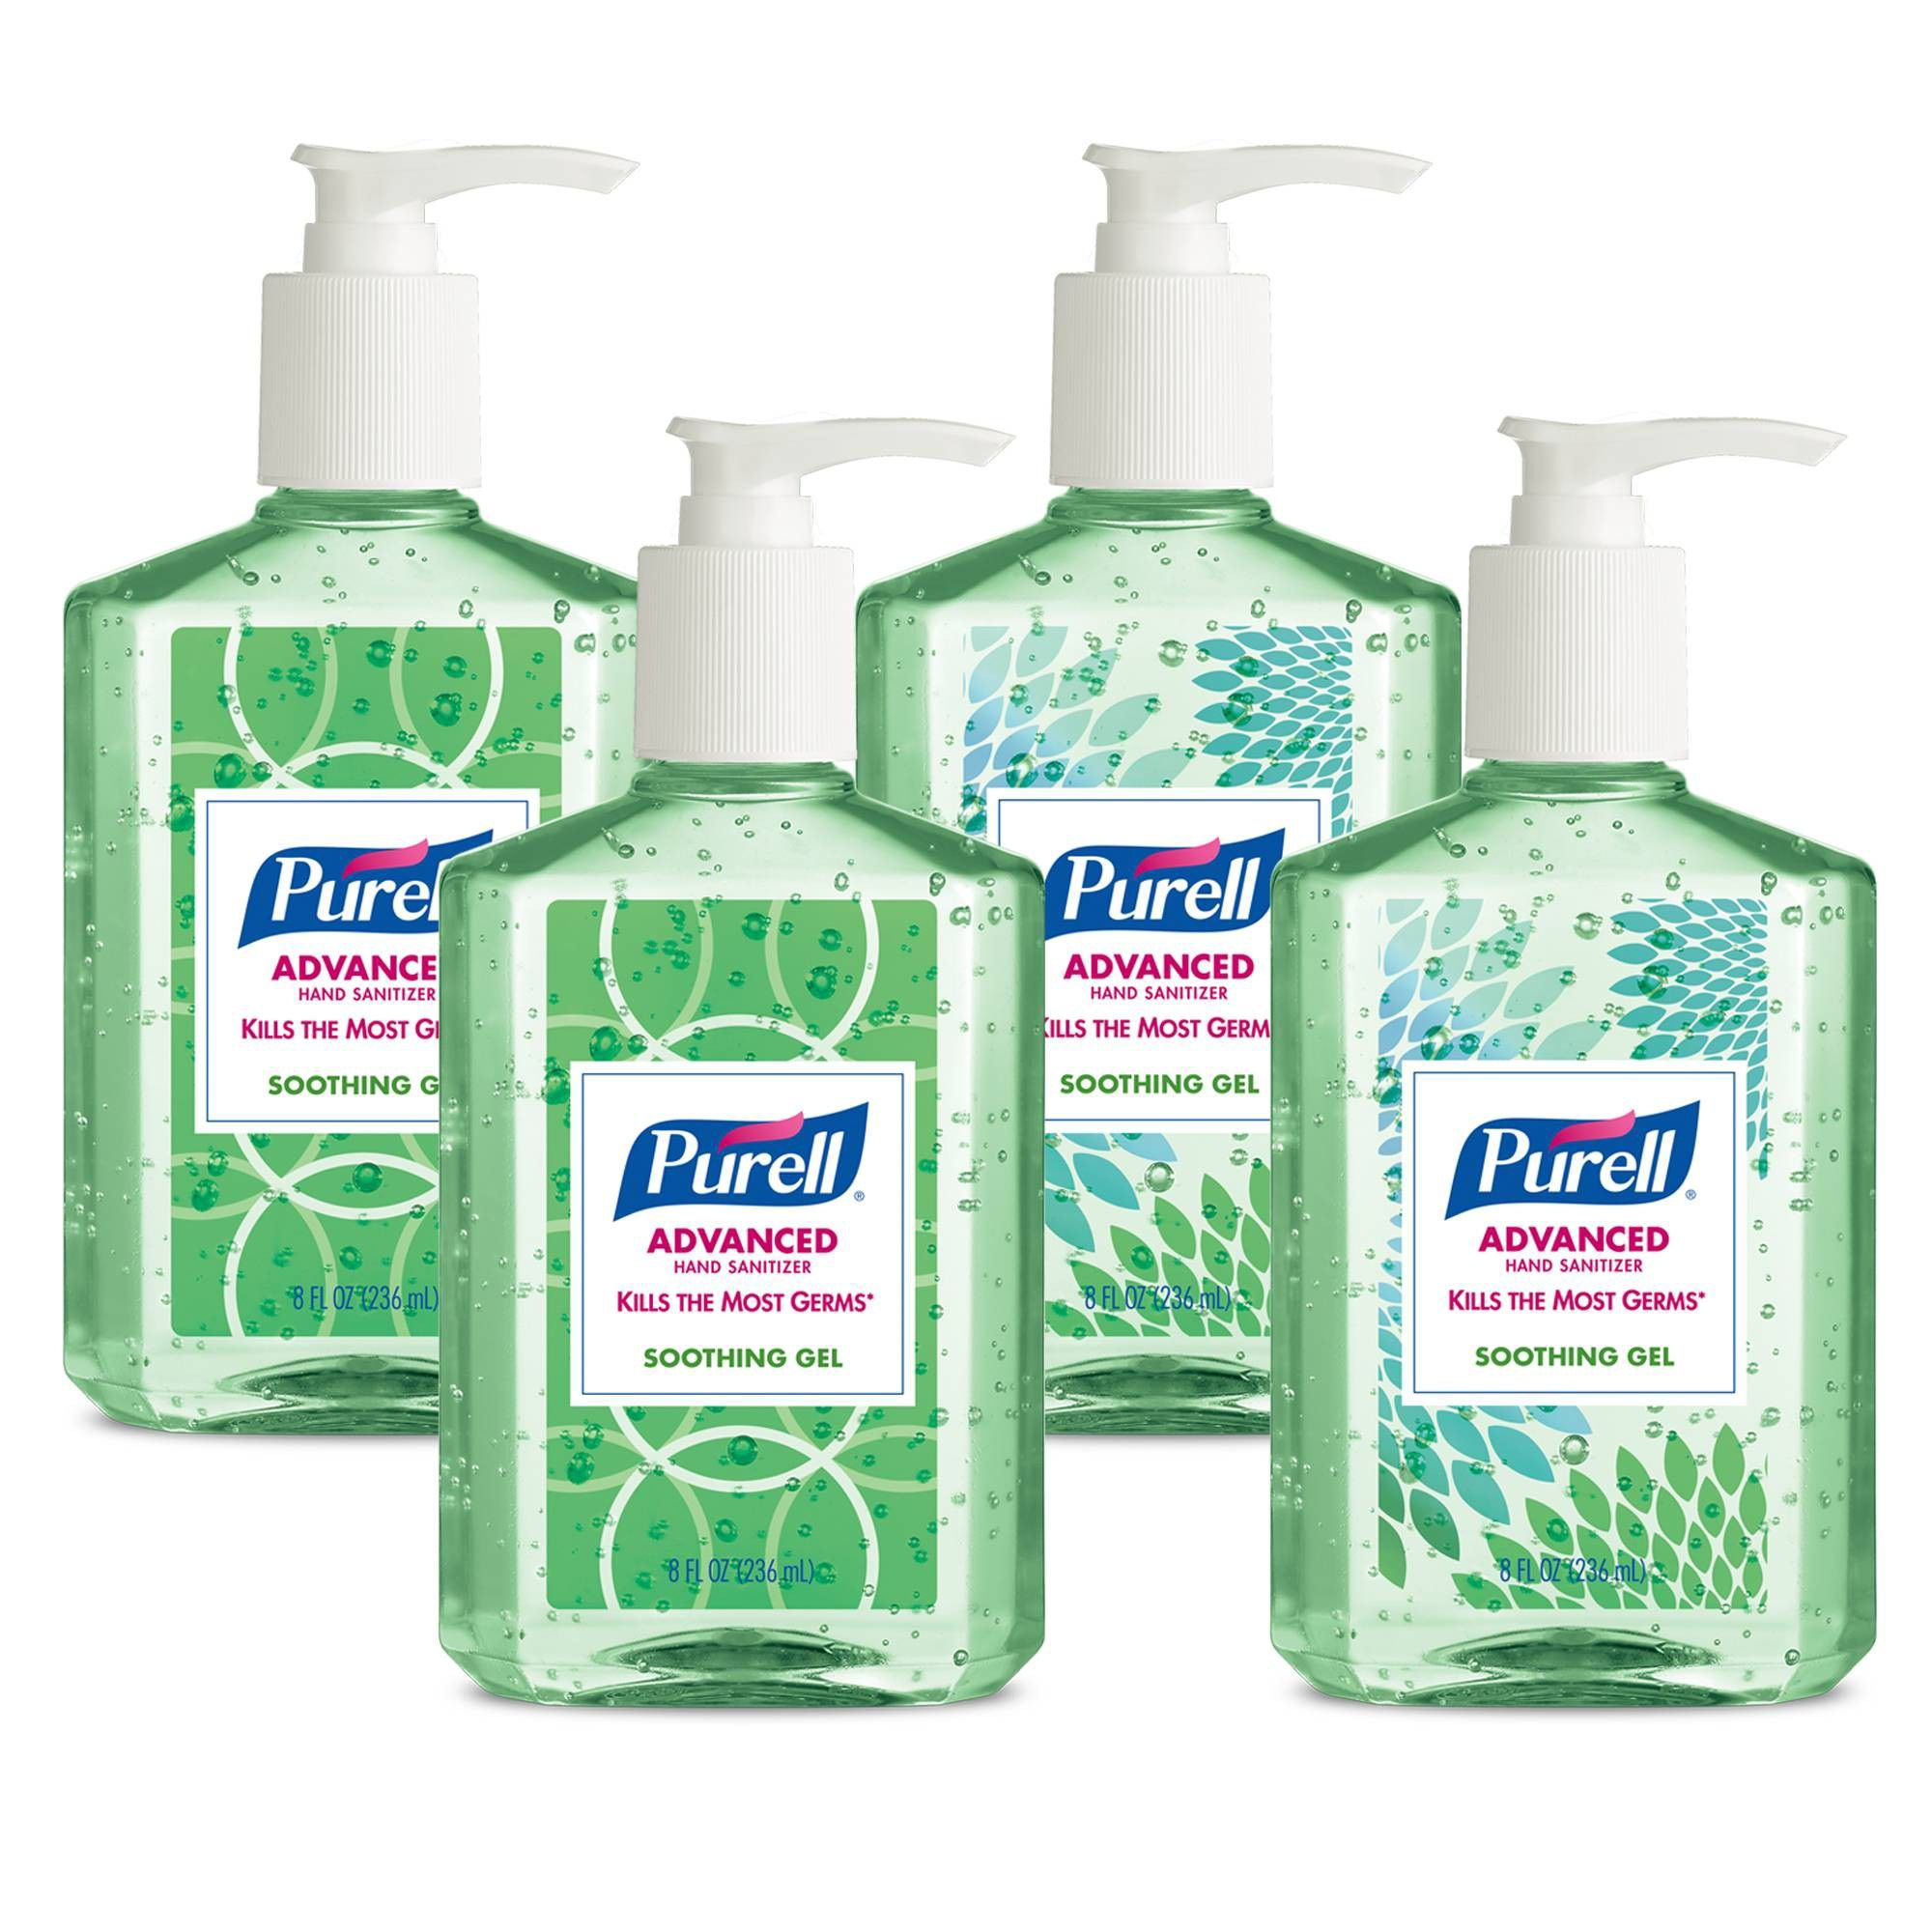 Purell Hand Sanitizers Just 0 95 At Walgreens Sanitizer Hand